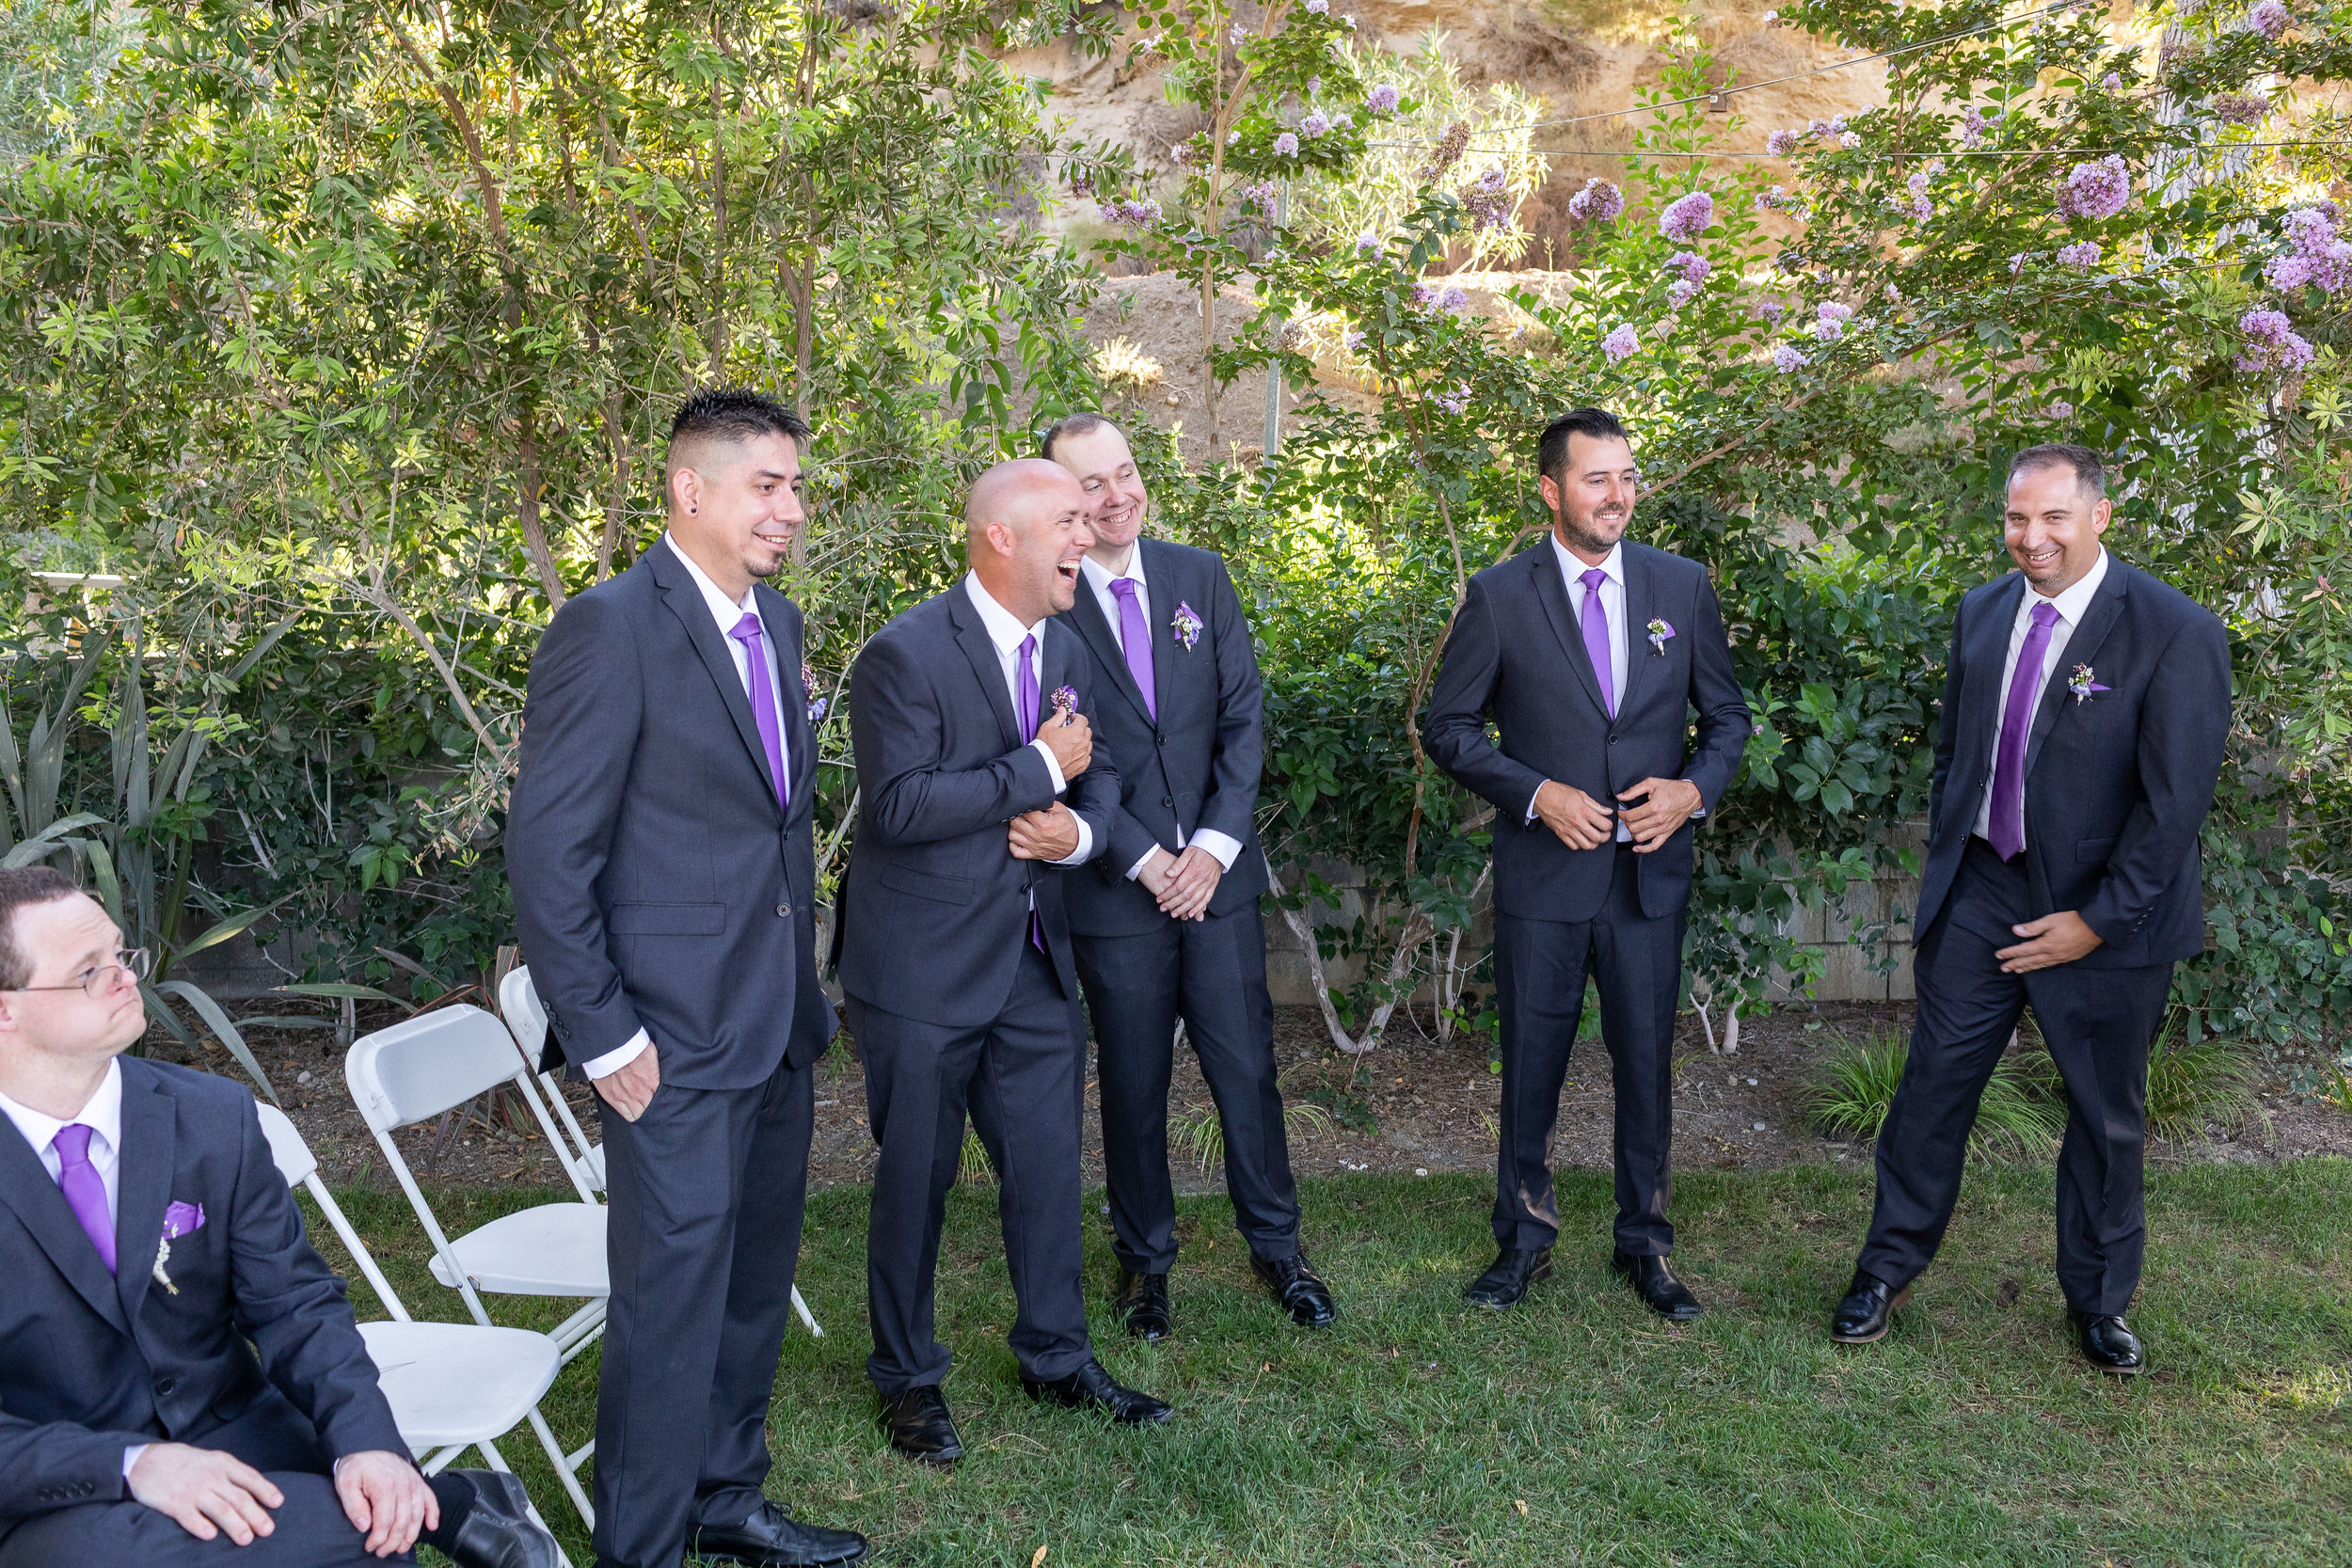 Groomsmen Having Fun.jpg